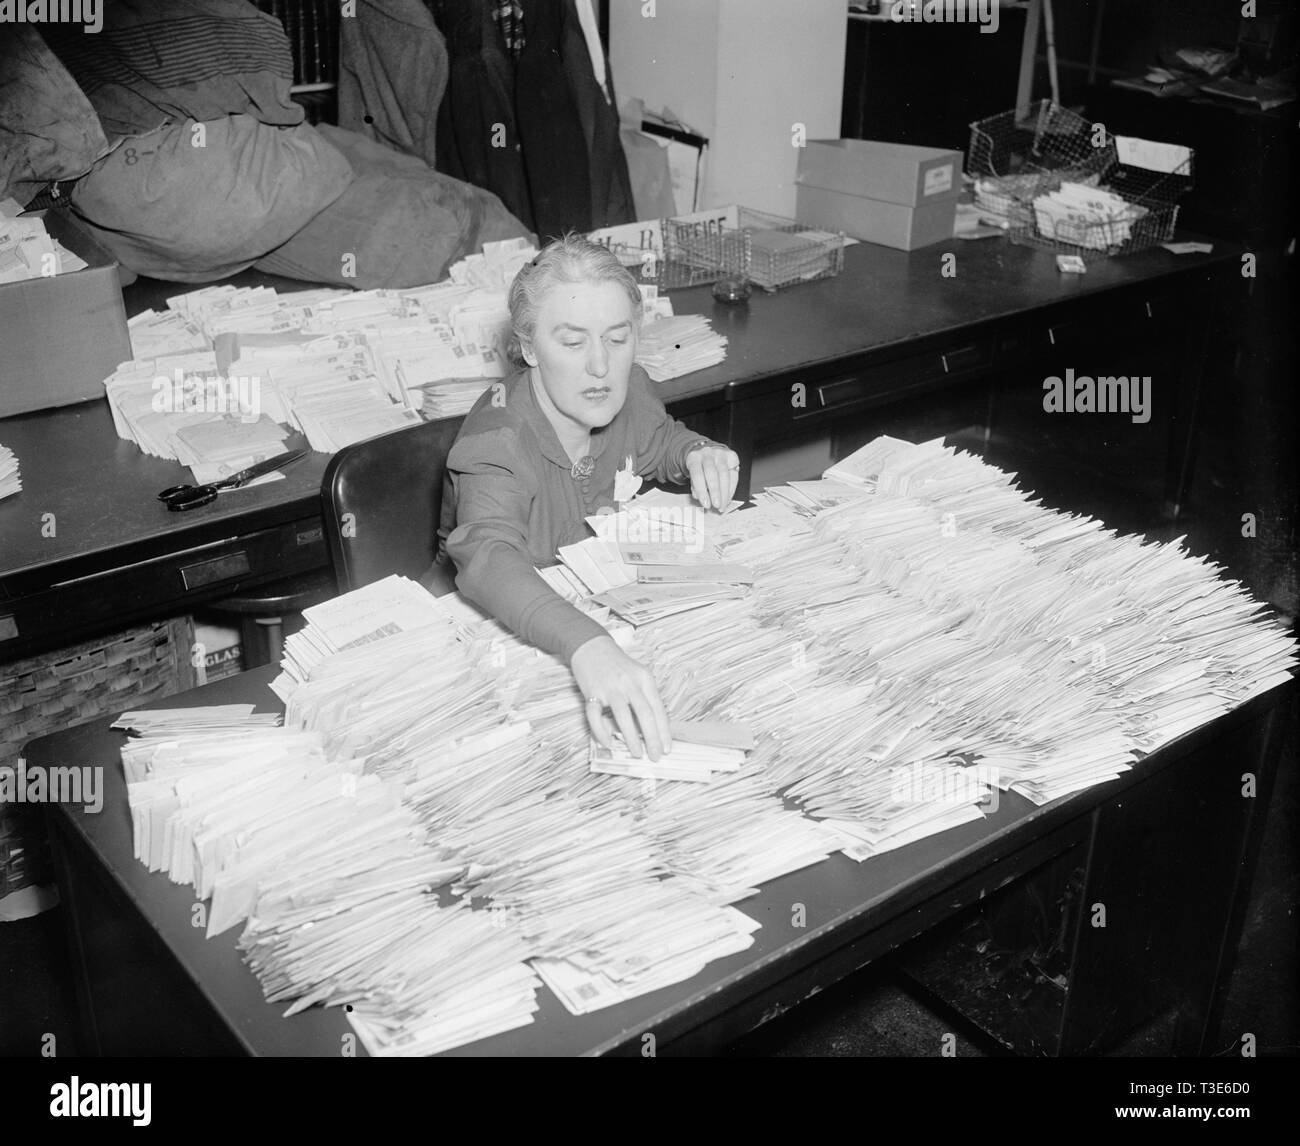 January 28, 1938 - Miss Margaret Lehand, Personal Secretary to President Roosevelt, is shown opening some of the 30,000 letters with donated dimes to the infantile paralysis foundation to arrive in the mail - Stock Image